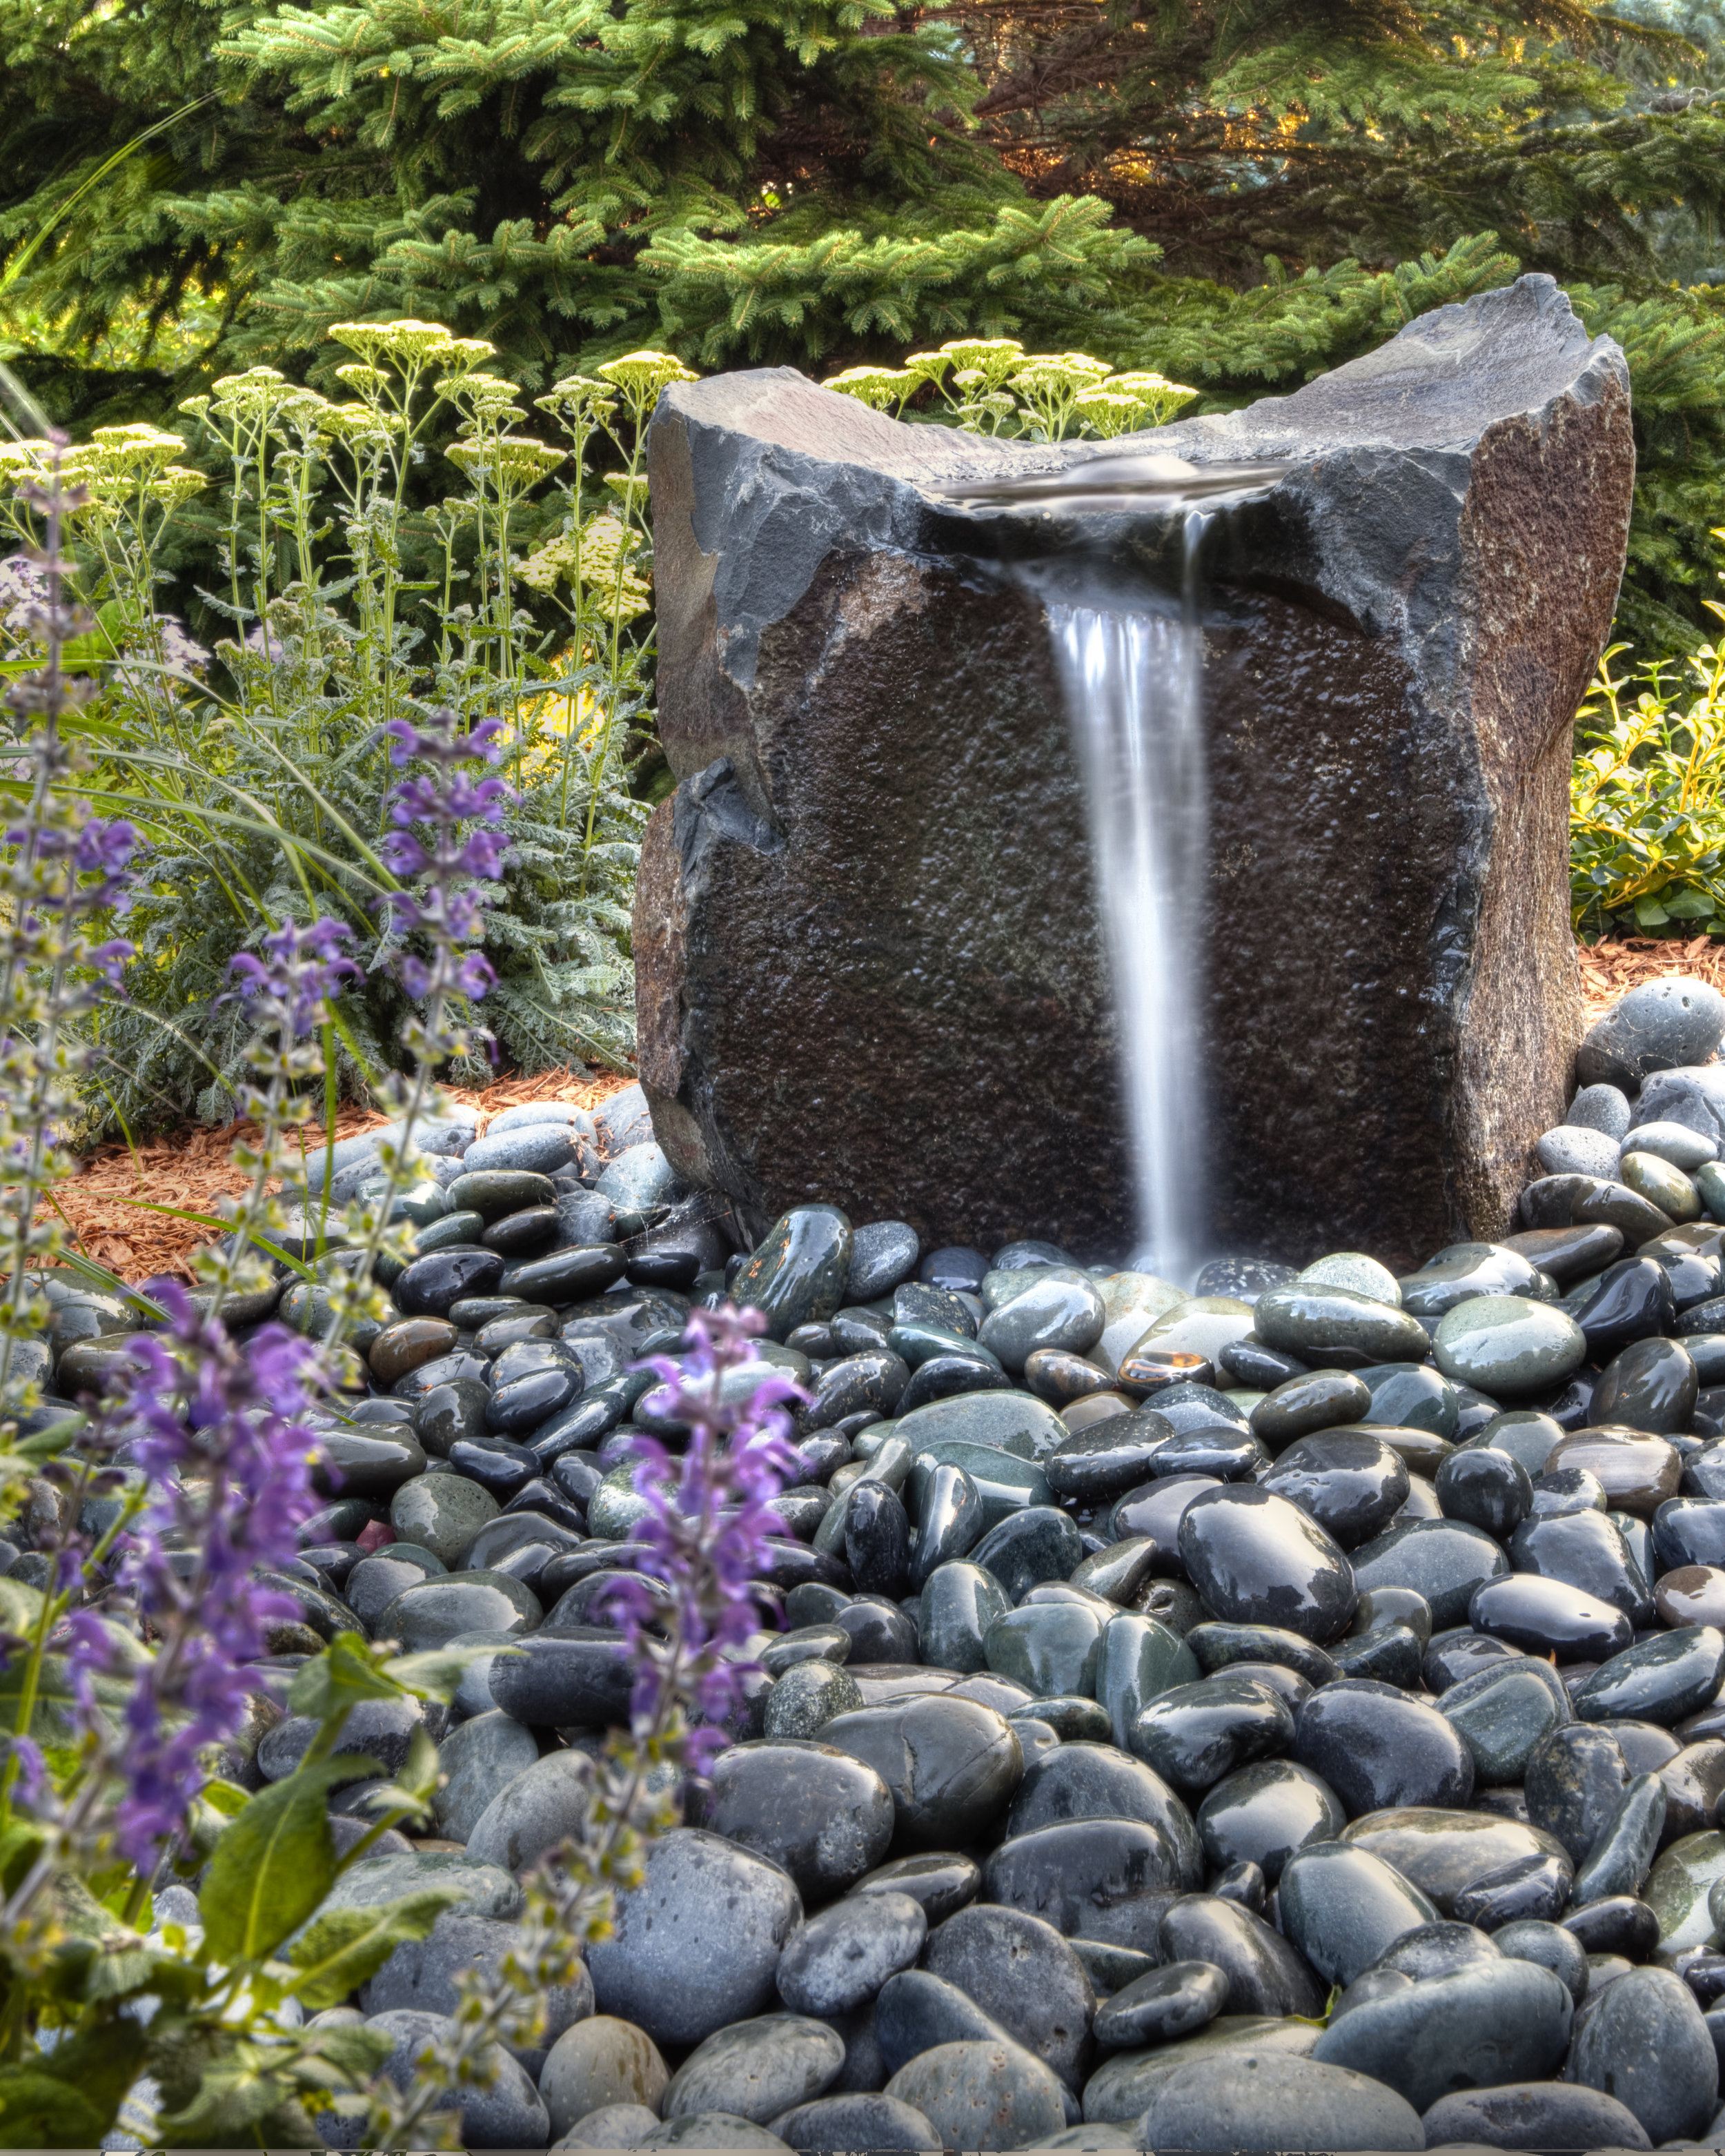 A vacation in your own backyard. The calming sound of a waterfall steps from your door.